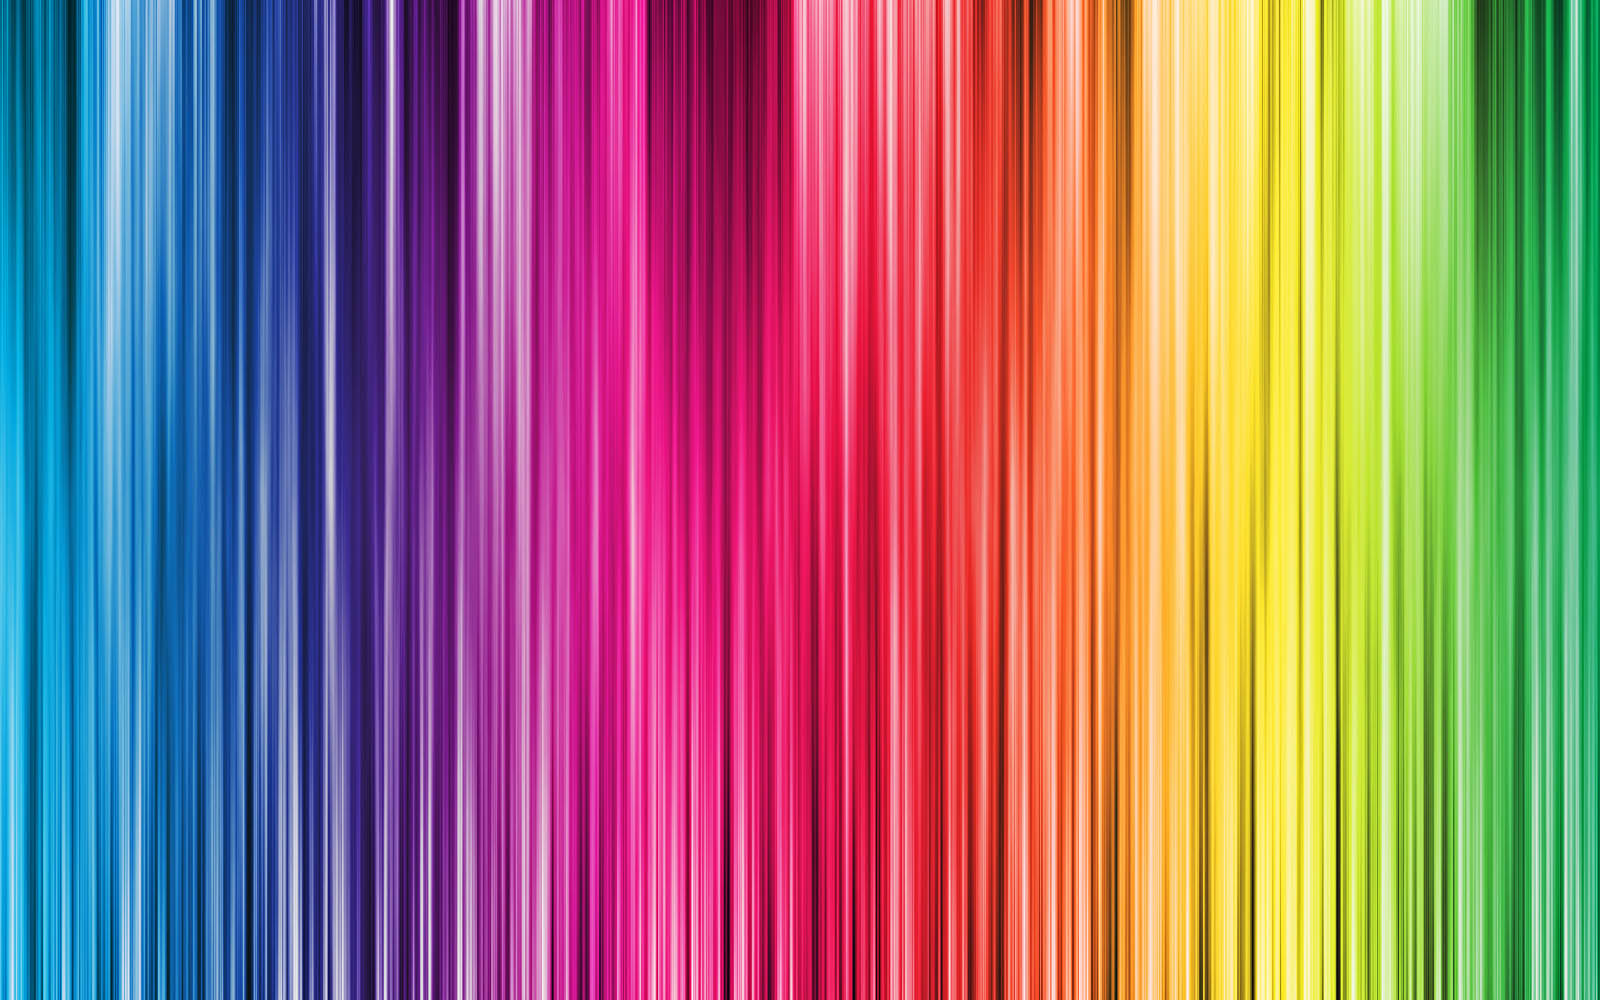 Http Wallpapers Xs Blogspot Com 2012 06 Colorful Lines Wallpapers Html